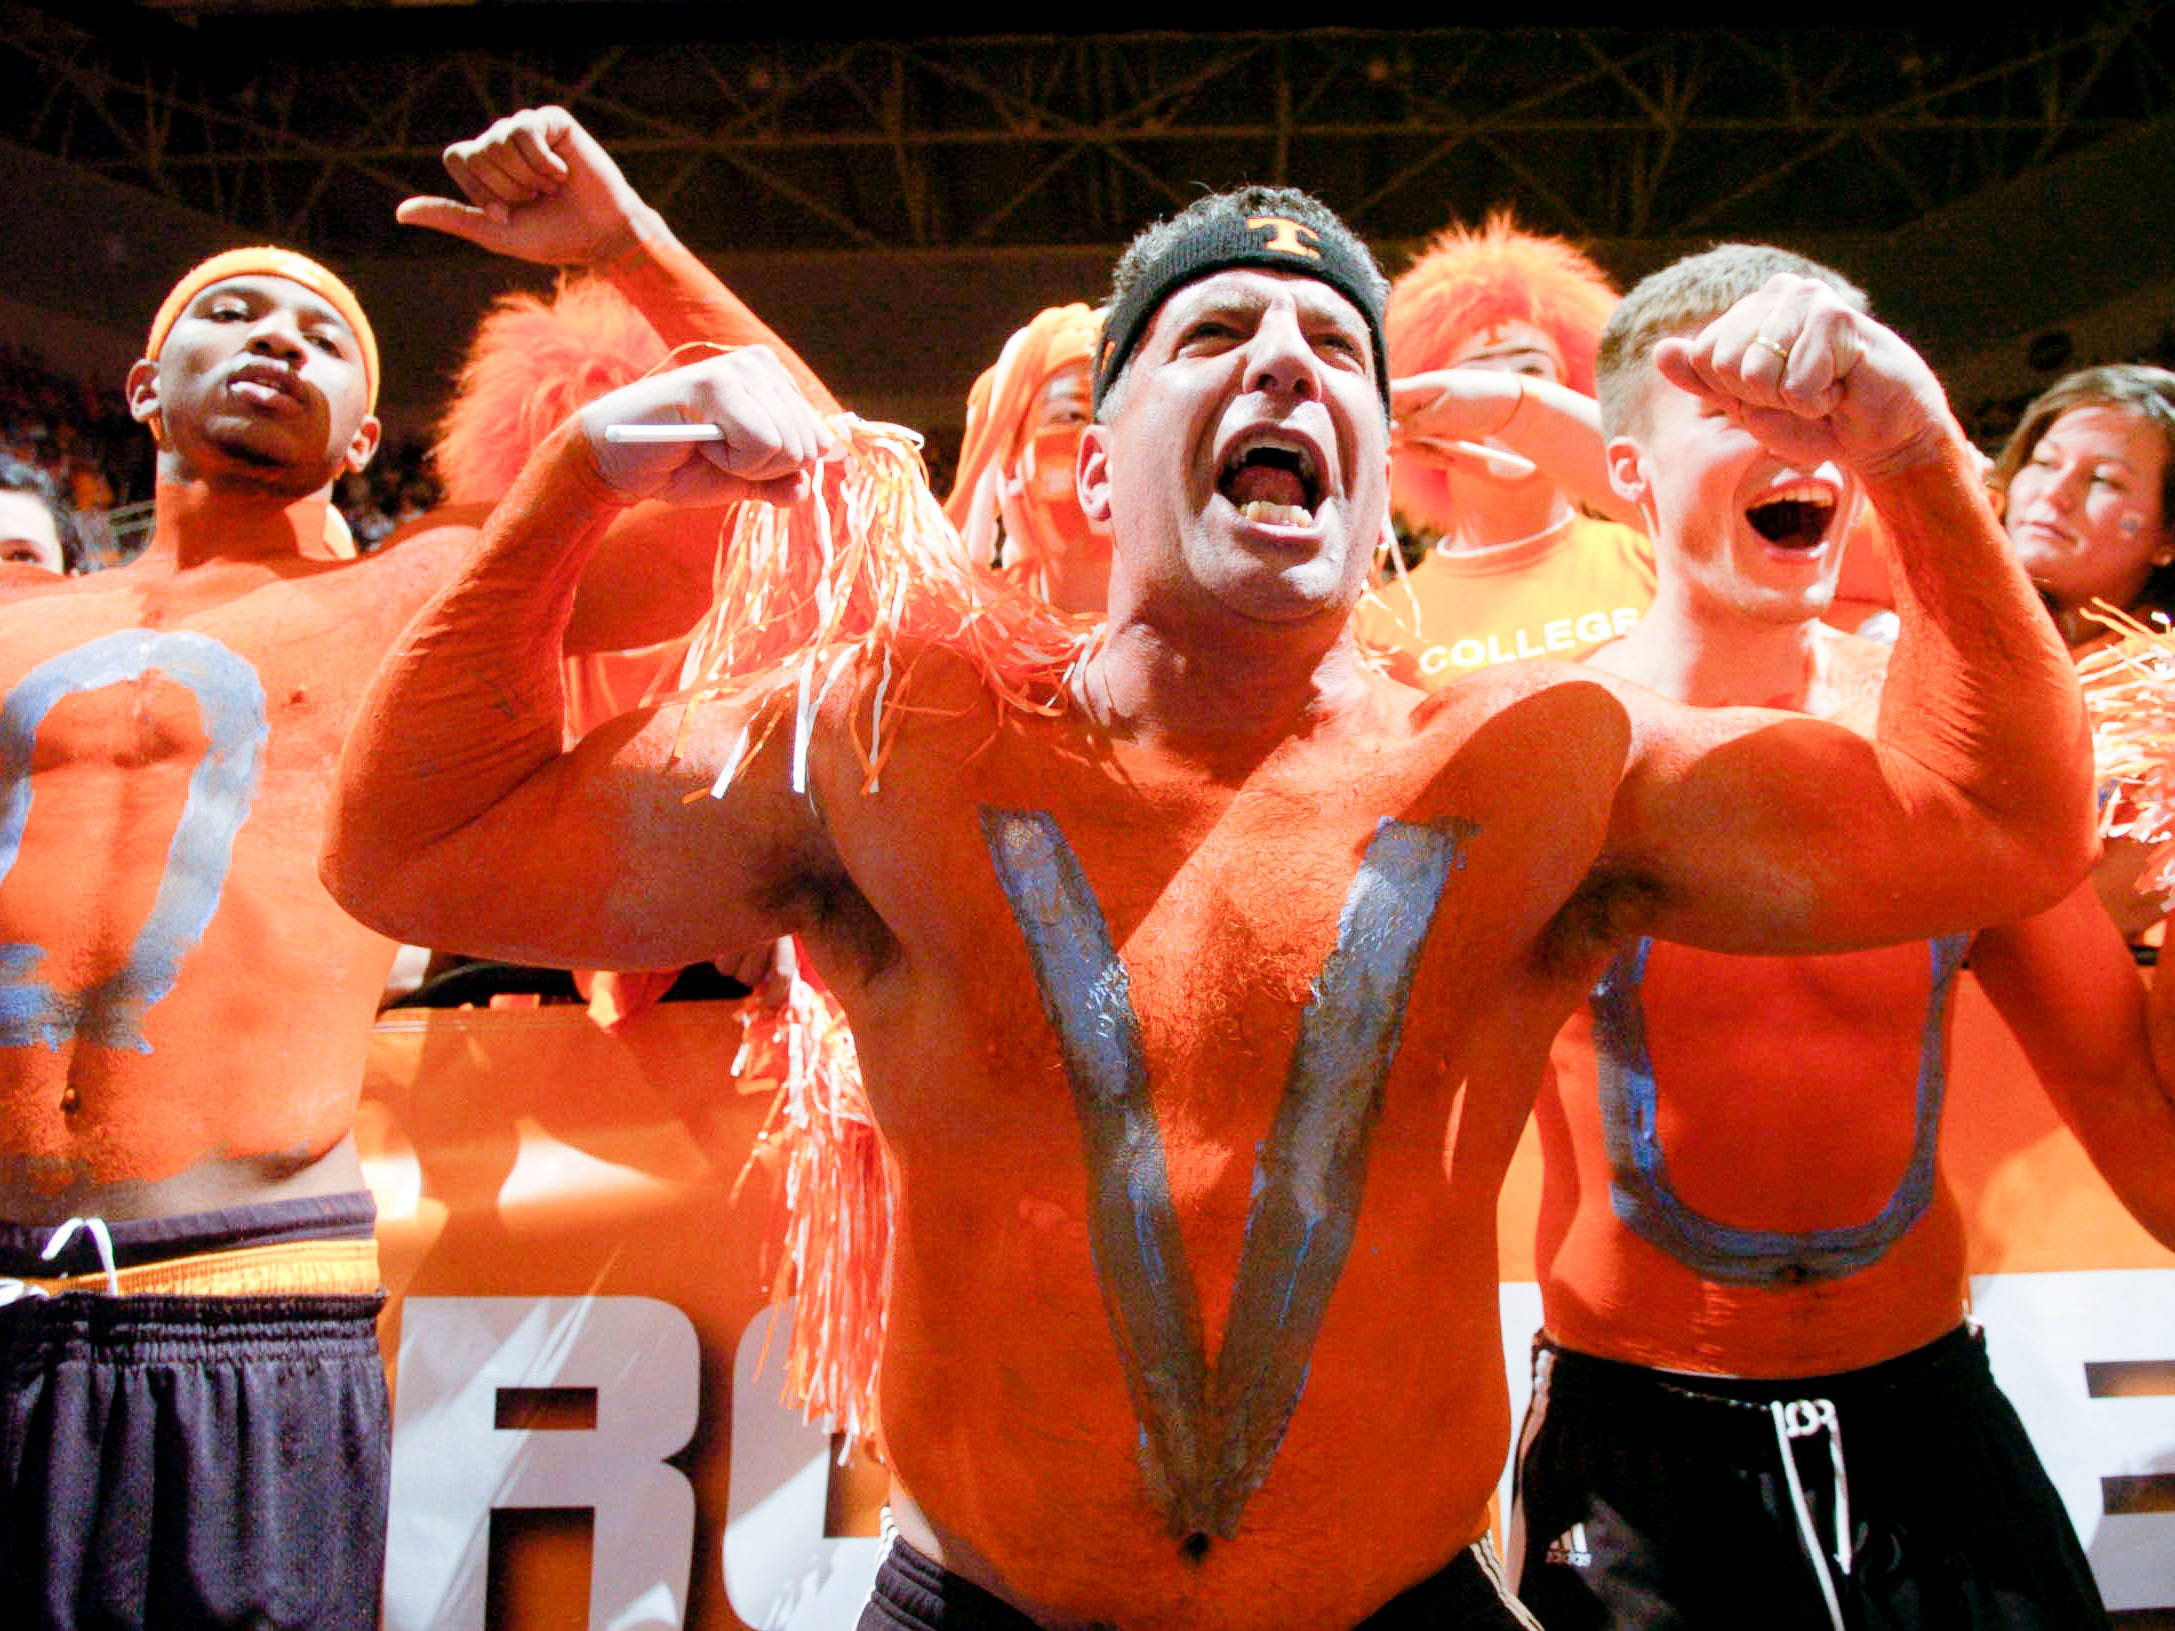 Tennessee men's basketball coach Bruce Pearl is stripped at the waist and painted in orange to cheer on the the Lady Vols just before the start of their game against Duke on Monday, January 22, 2007.